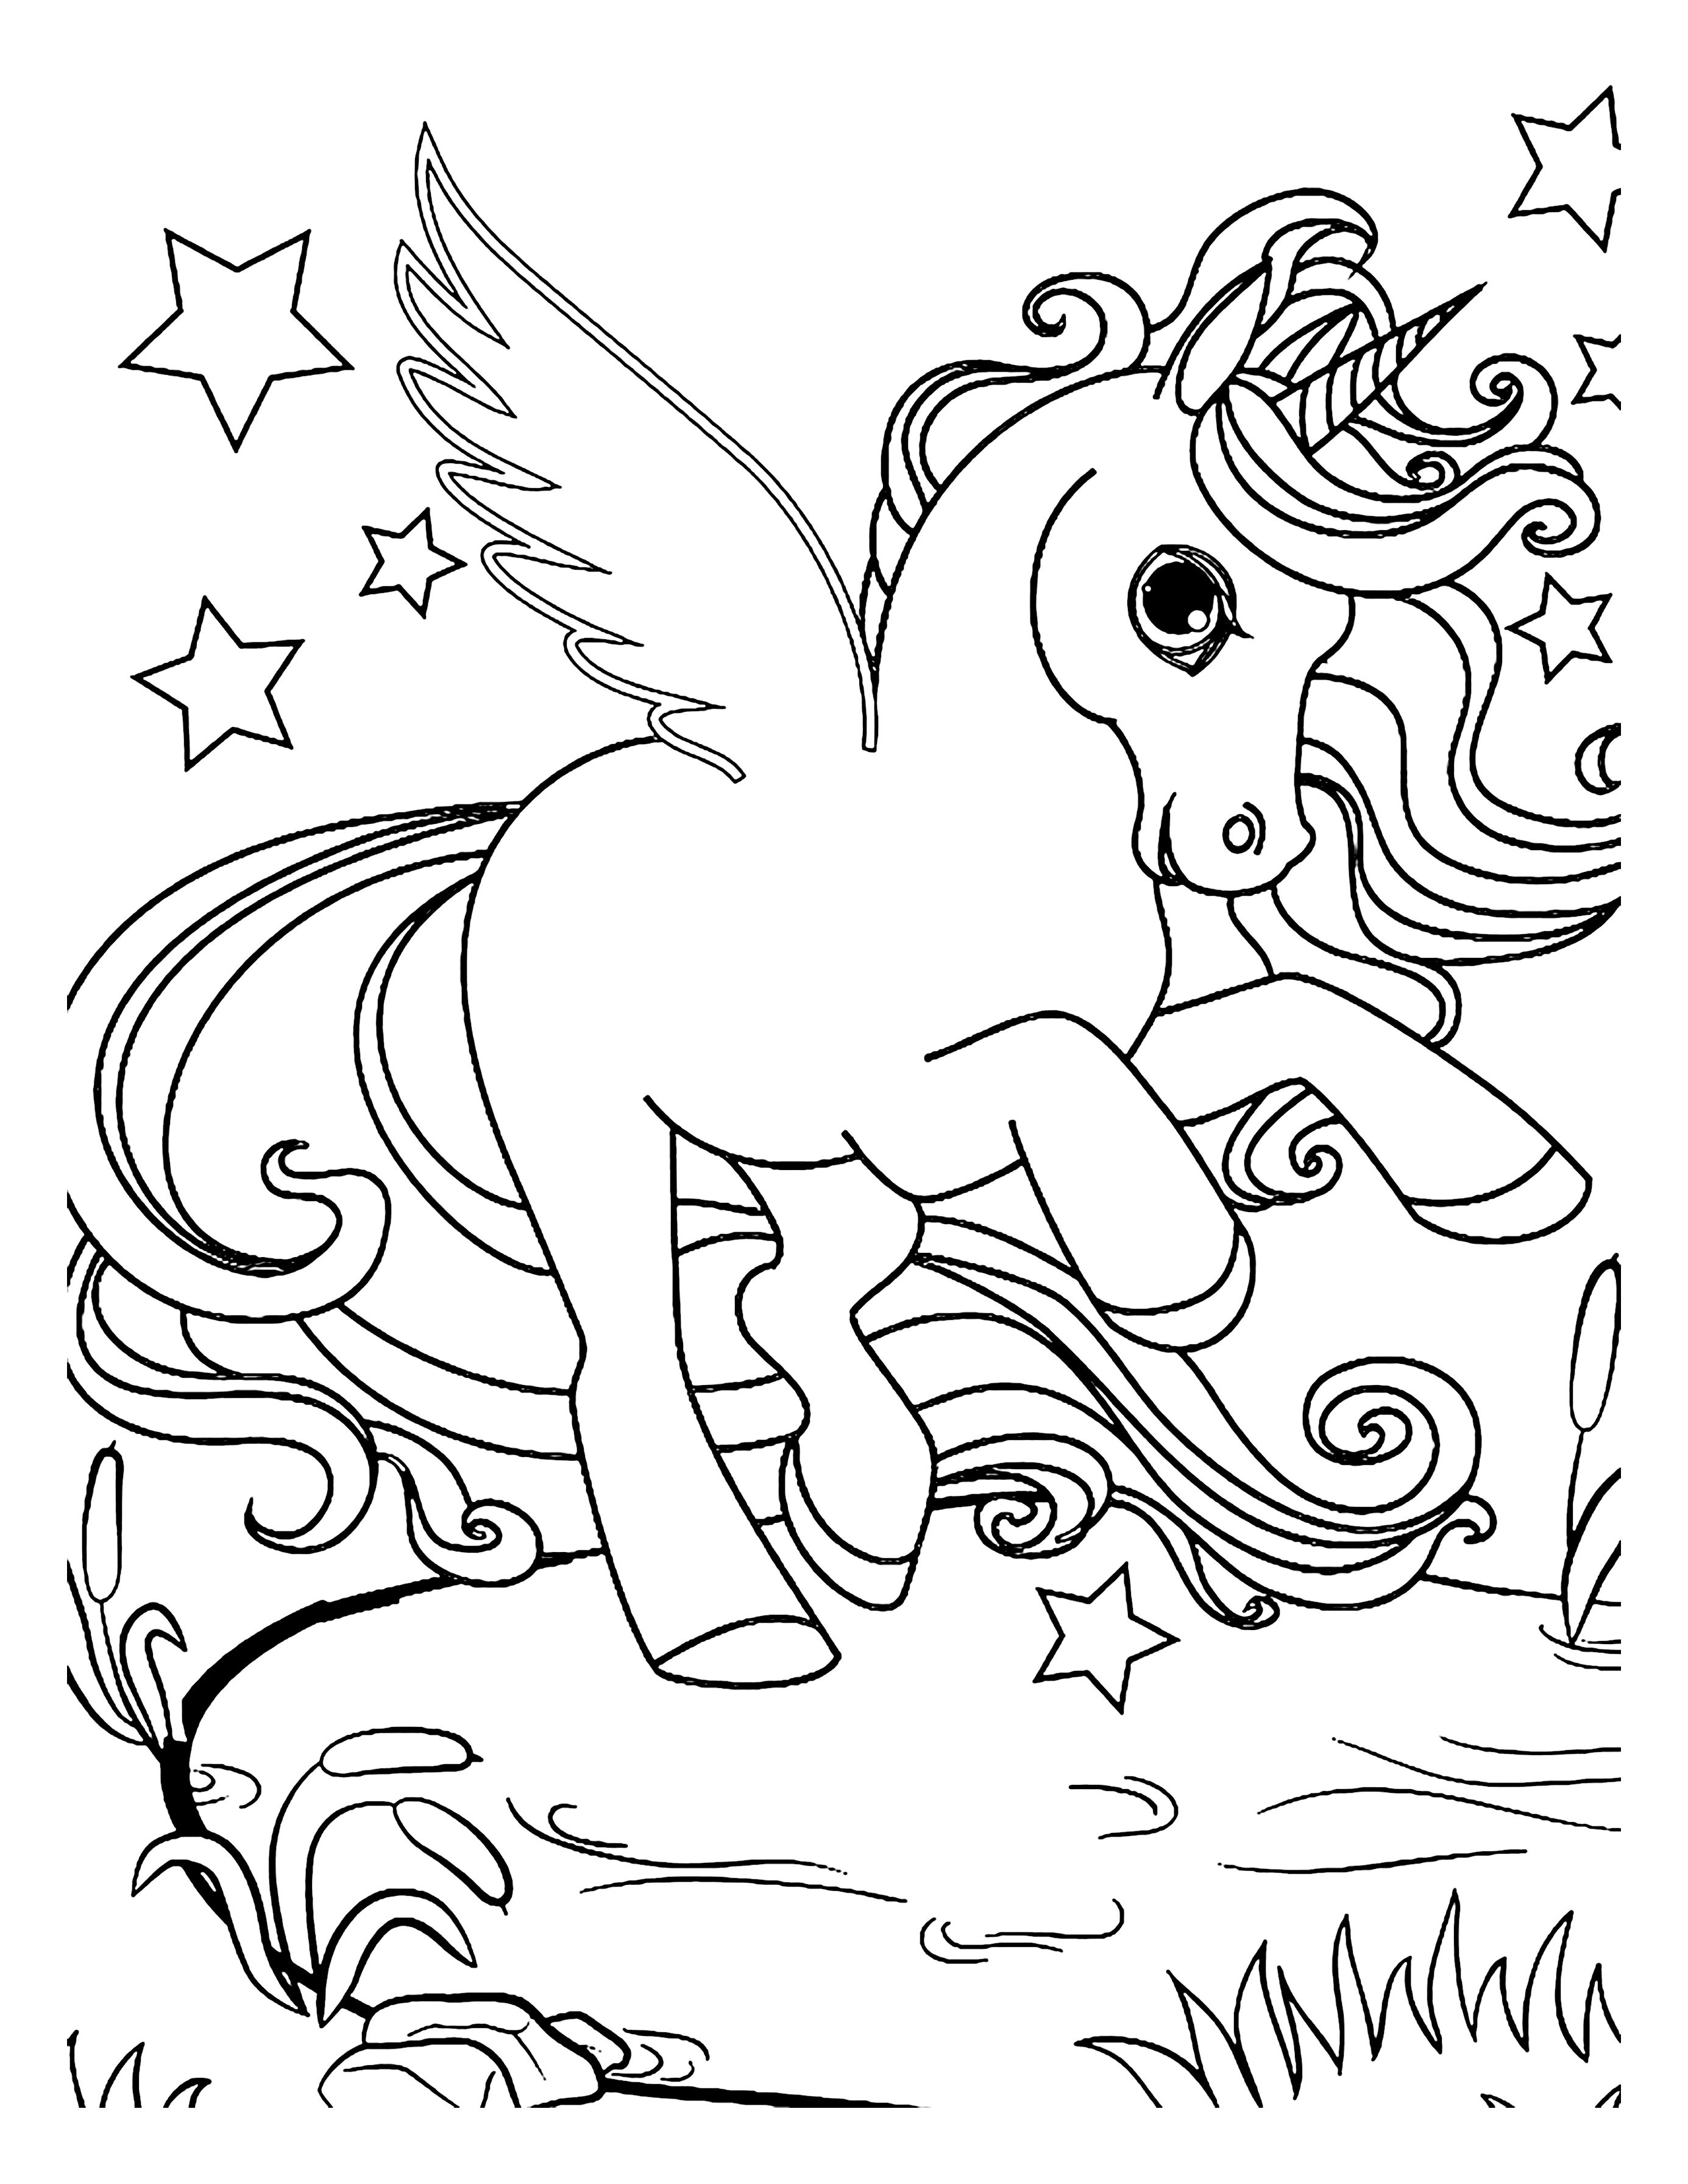 Pin On 100 Unicorn Coloring Pages For Kids